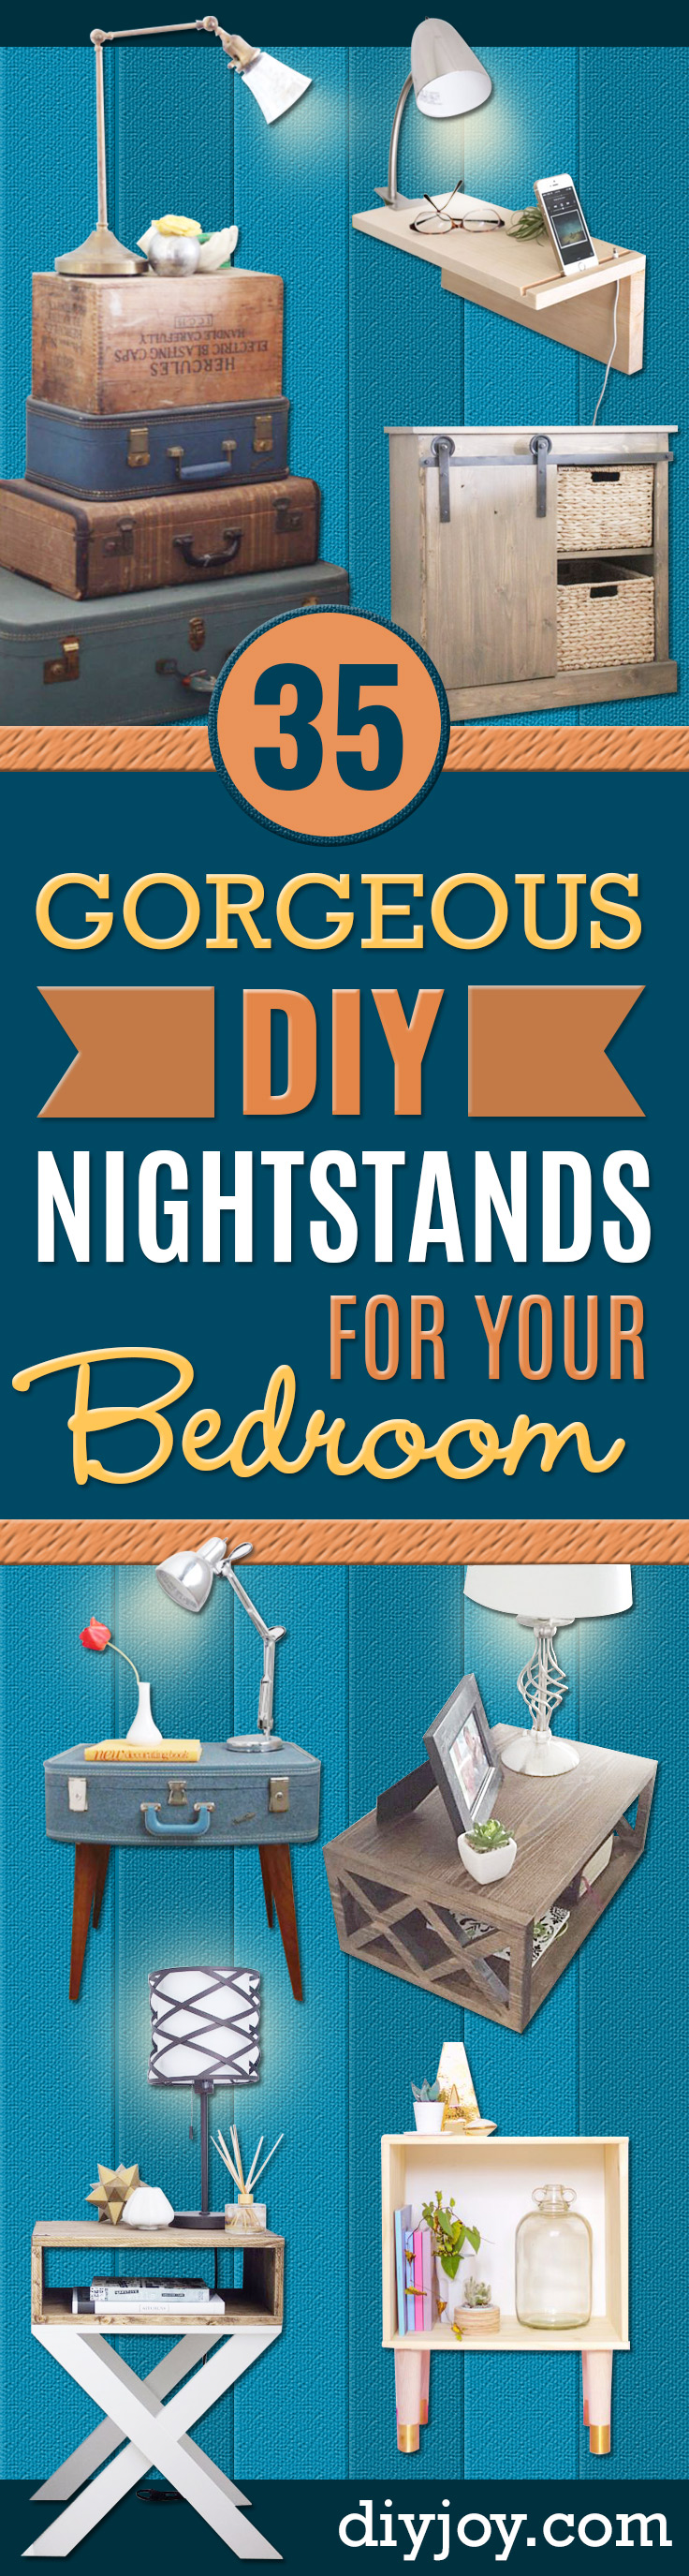 DIY Nightstands for the Bedroom - Easy Do It Yourself Bedside Tables and Furniture Project Ideas - Thrift Store Makeovers For Your Room and Bed Side Night Stand - Storage for Books and Remotes, Cute Shabby Chic and Vintage Decor - Step by Step Tutorials and Instructions http://diyjoy.com/diy-nightstands-bedroom